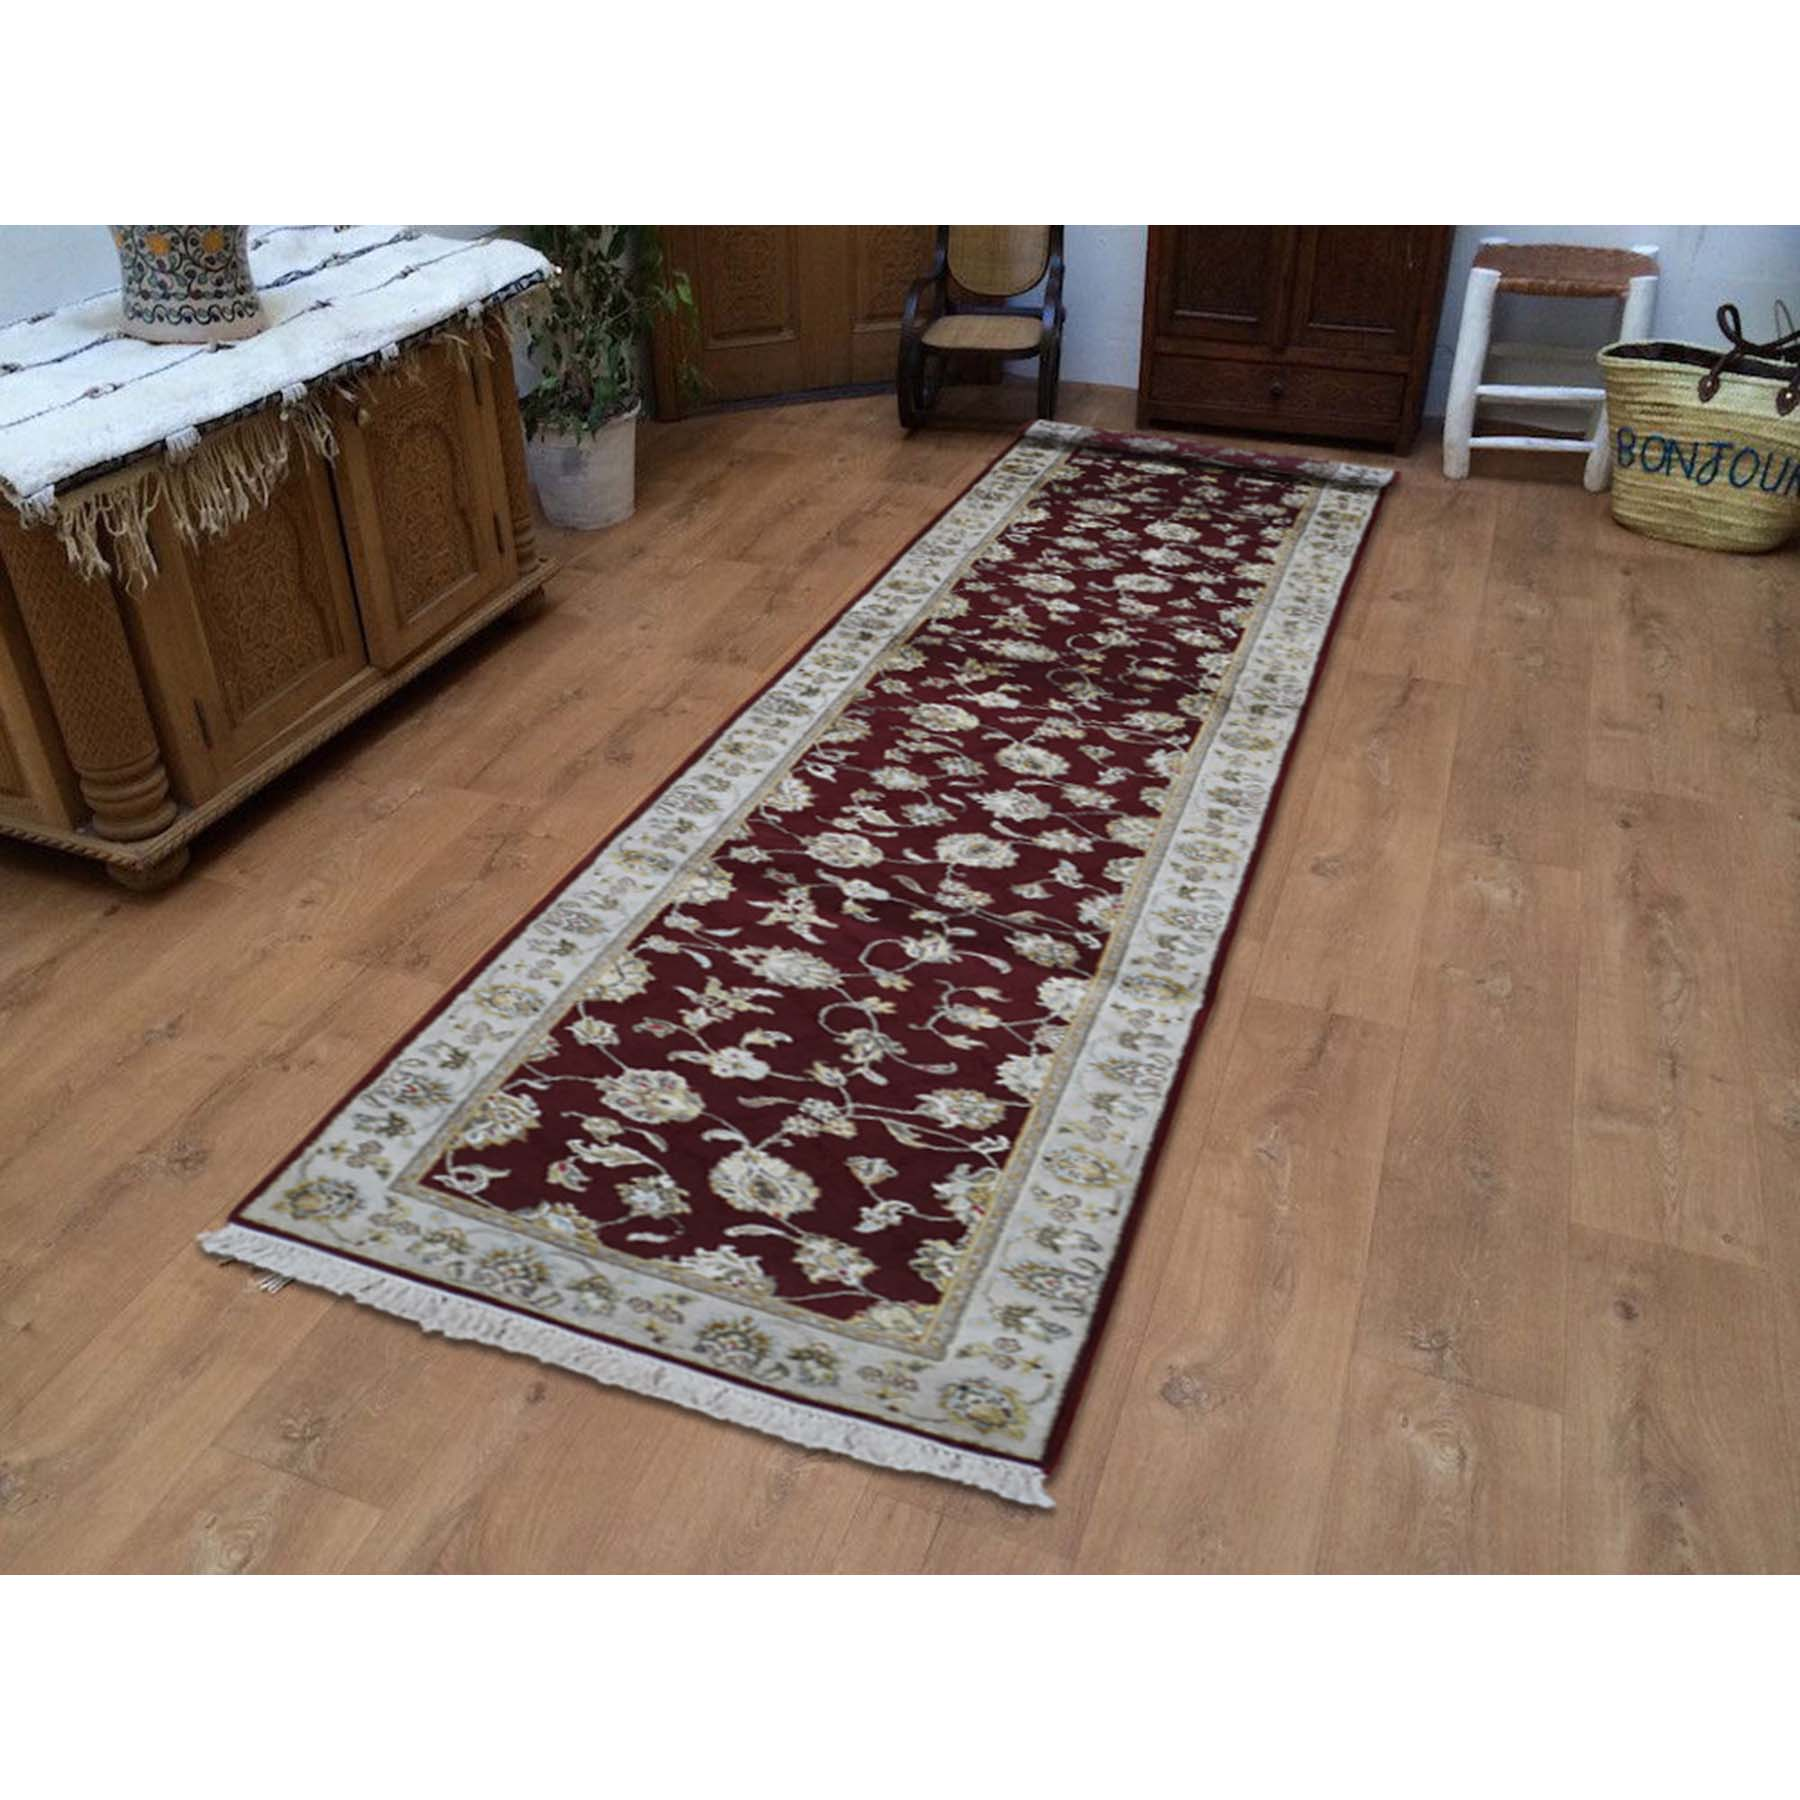 2-7 x14- Rajasthan Half Wool Half and Silk Hand-Knotted Runner Oriental Rug